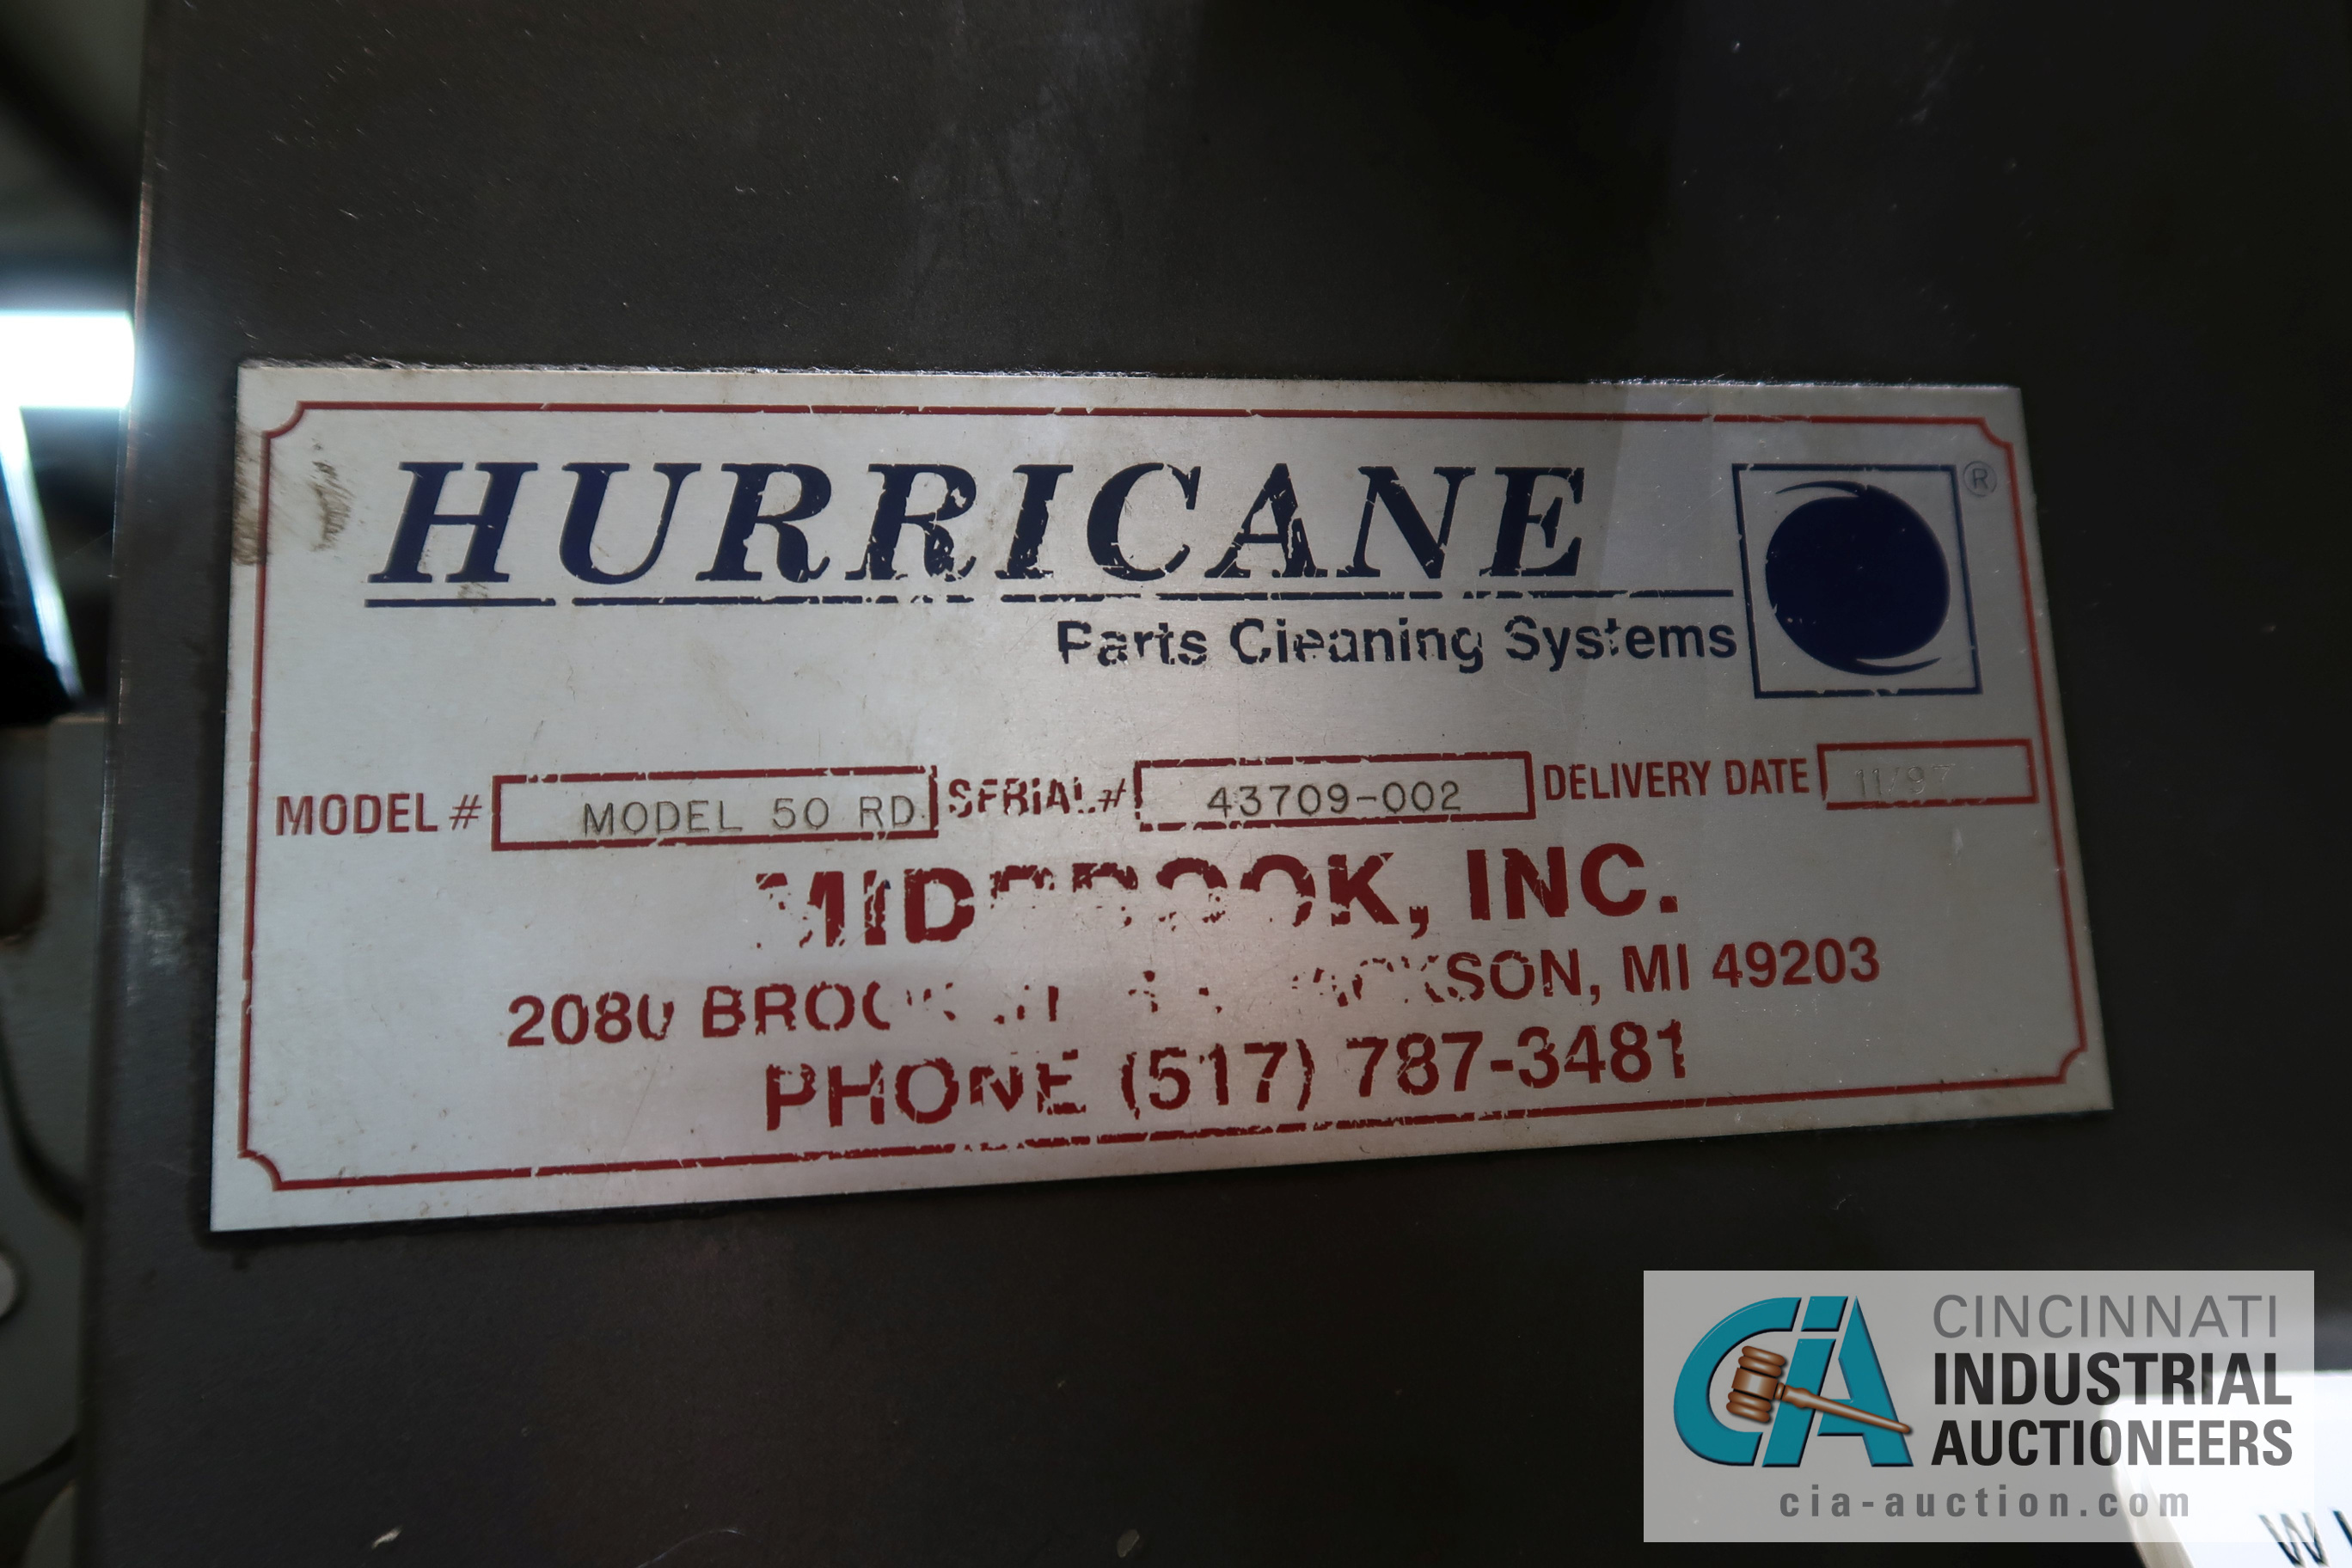 HURRICANE MODEL 50RD PARTS WASHER; S/N 43709-002 (NEW 1997), 8,736 HOURS SHOWING, 3-PHASE - Image 11 of 11